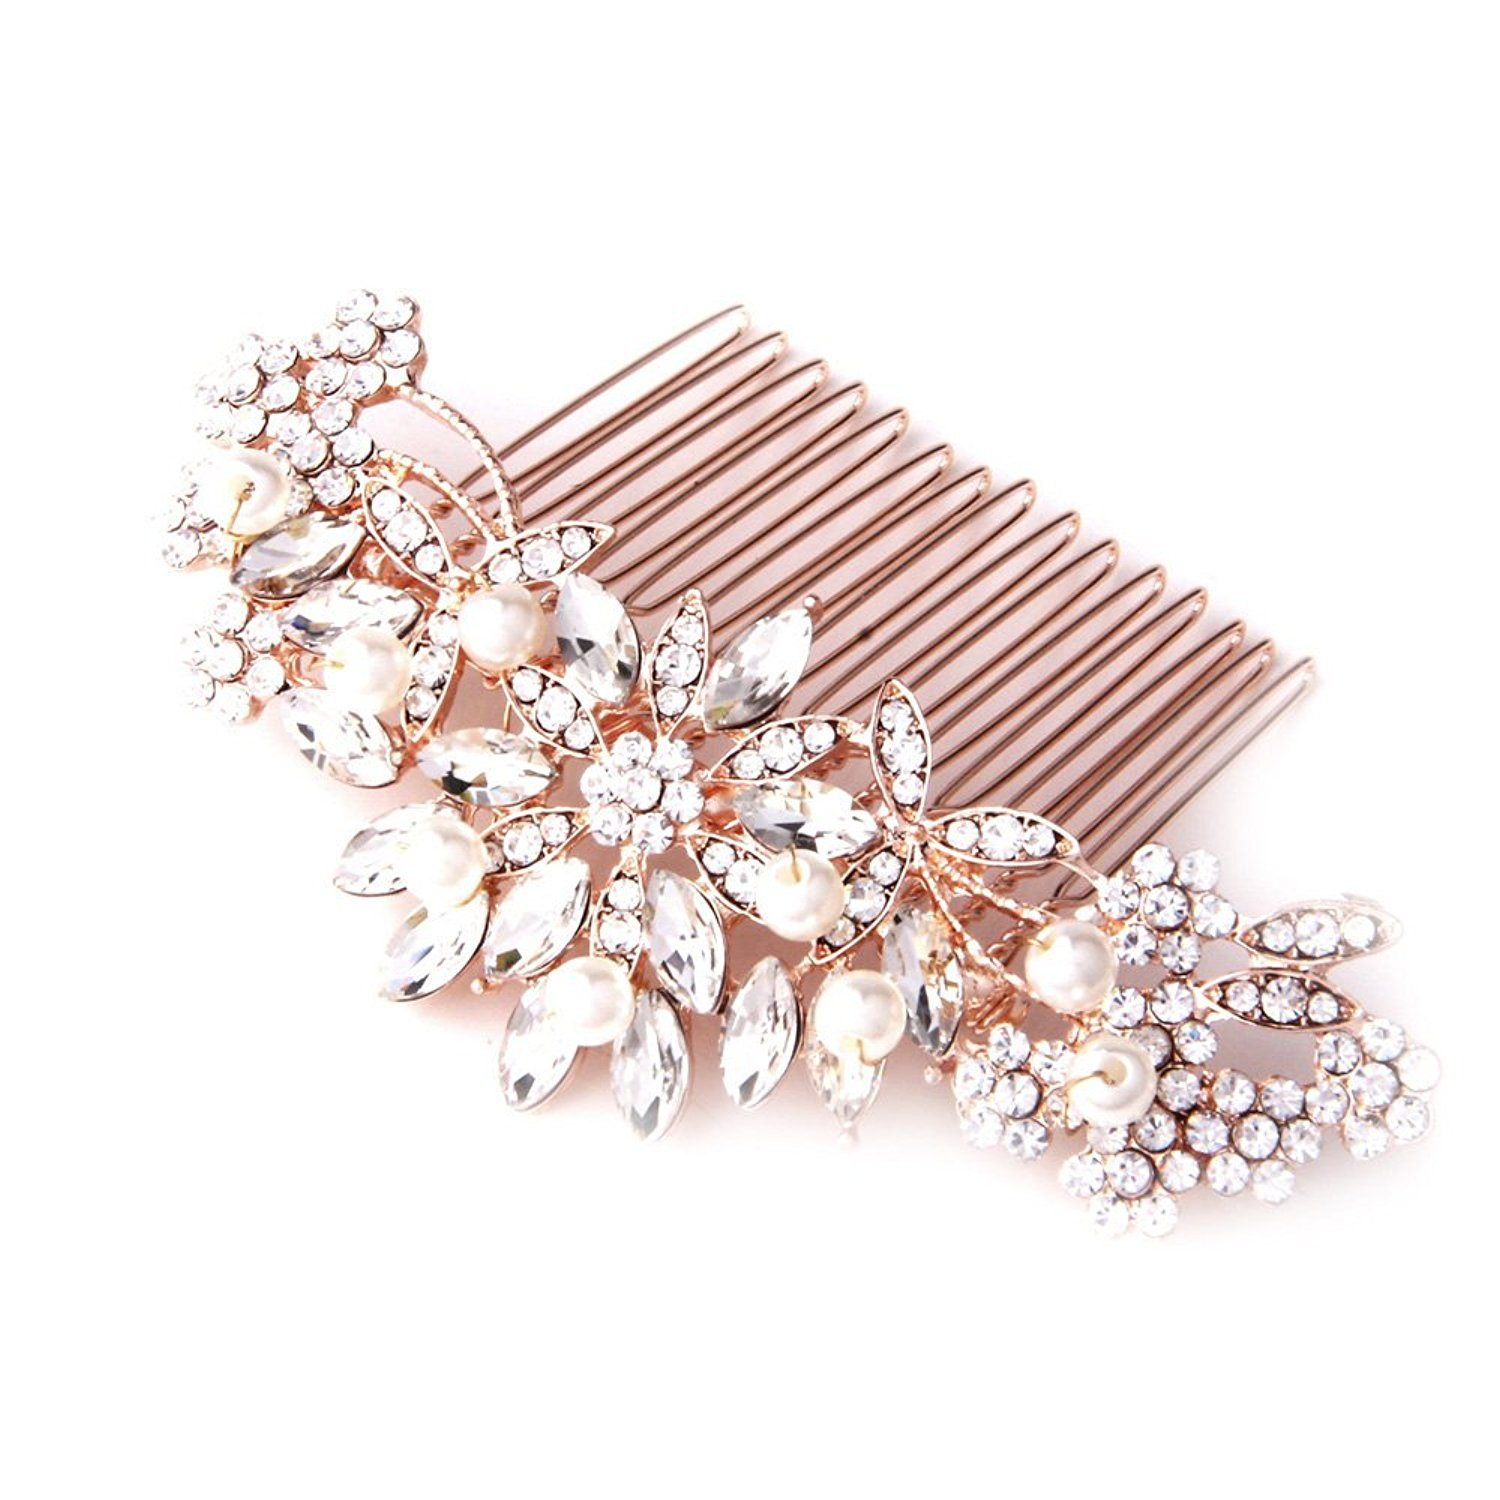 Fairy Moda Vintage Pearl Crystal Bridal Hair Accessories Rose Gold Hair Comb for Brides Wedding